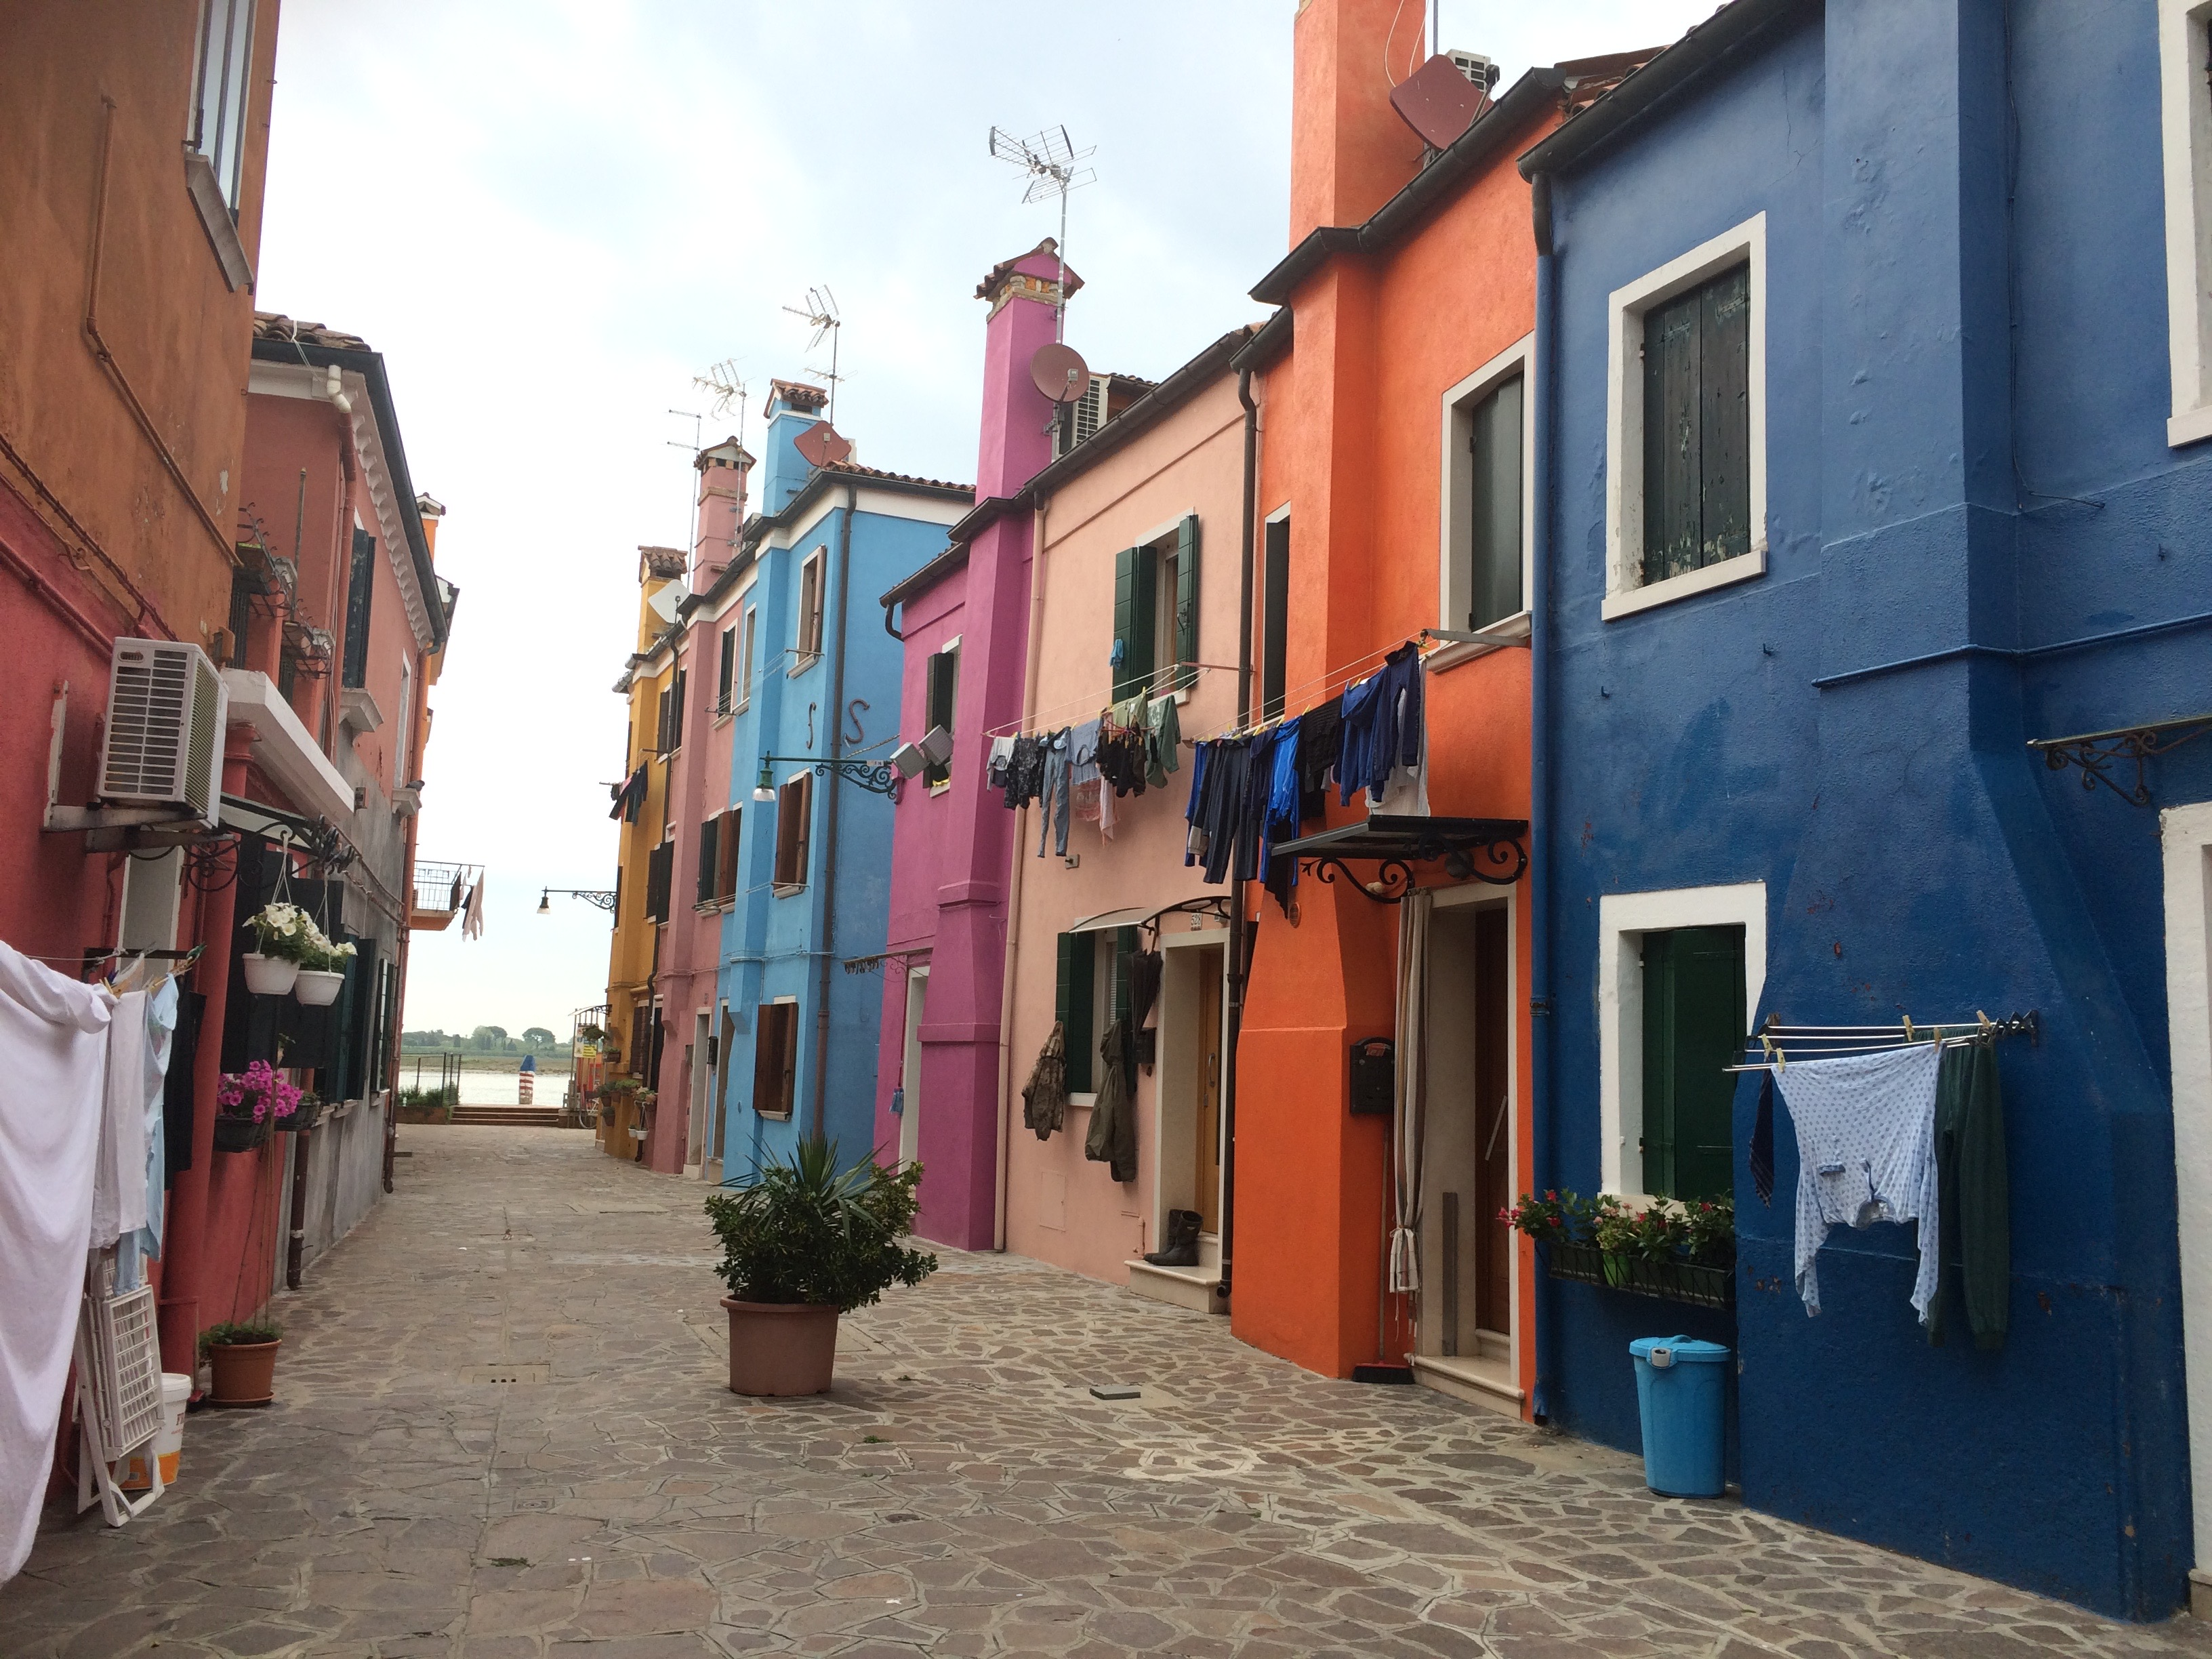 Burano Colourful Streets and washing